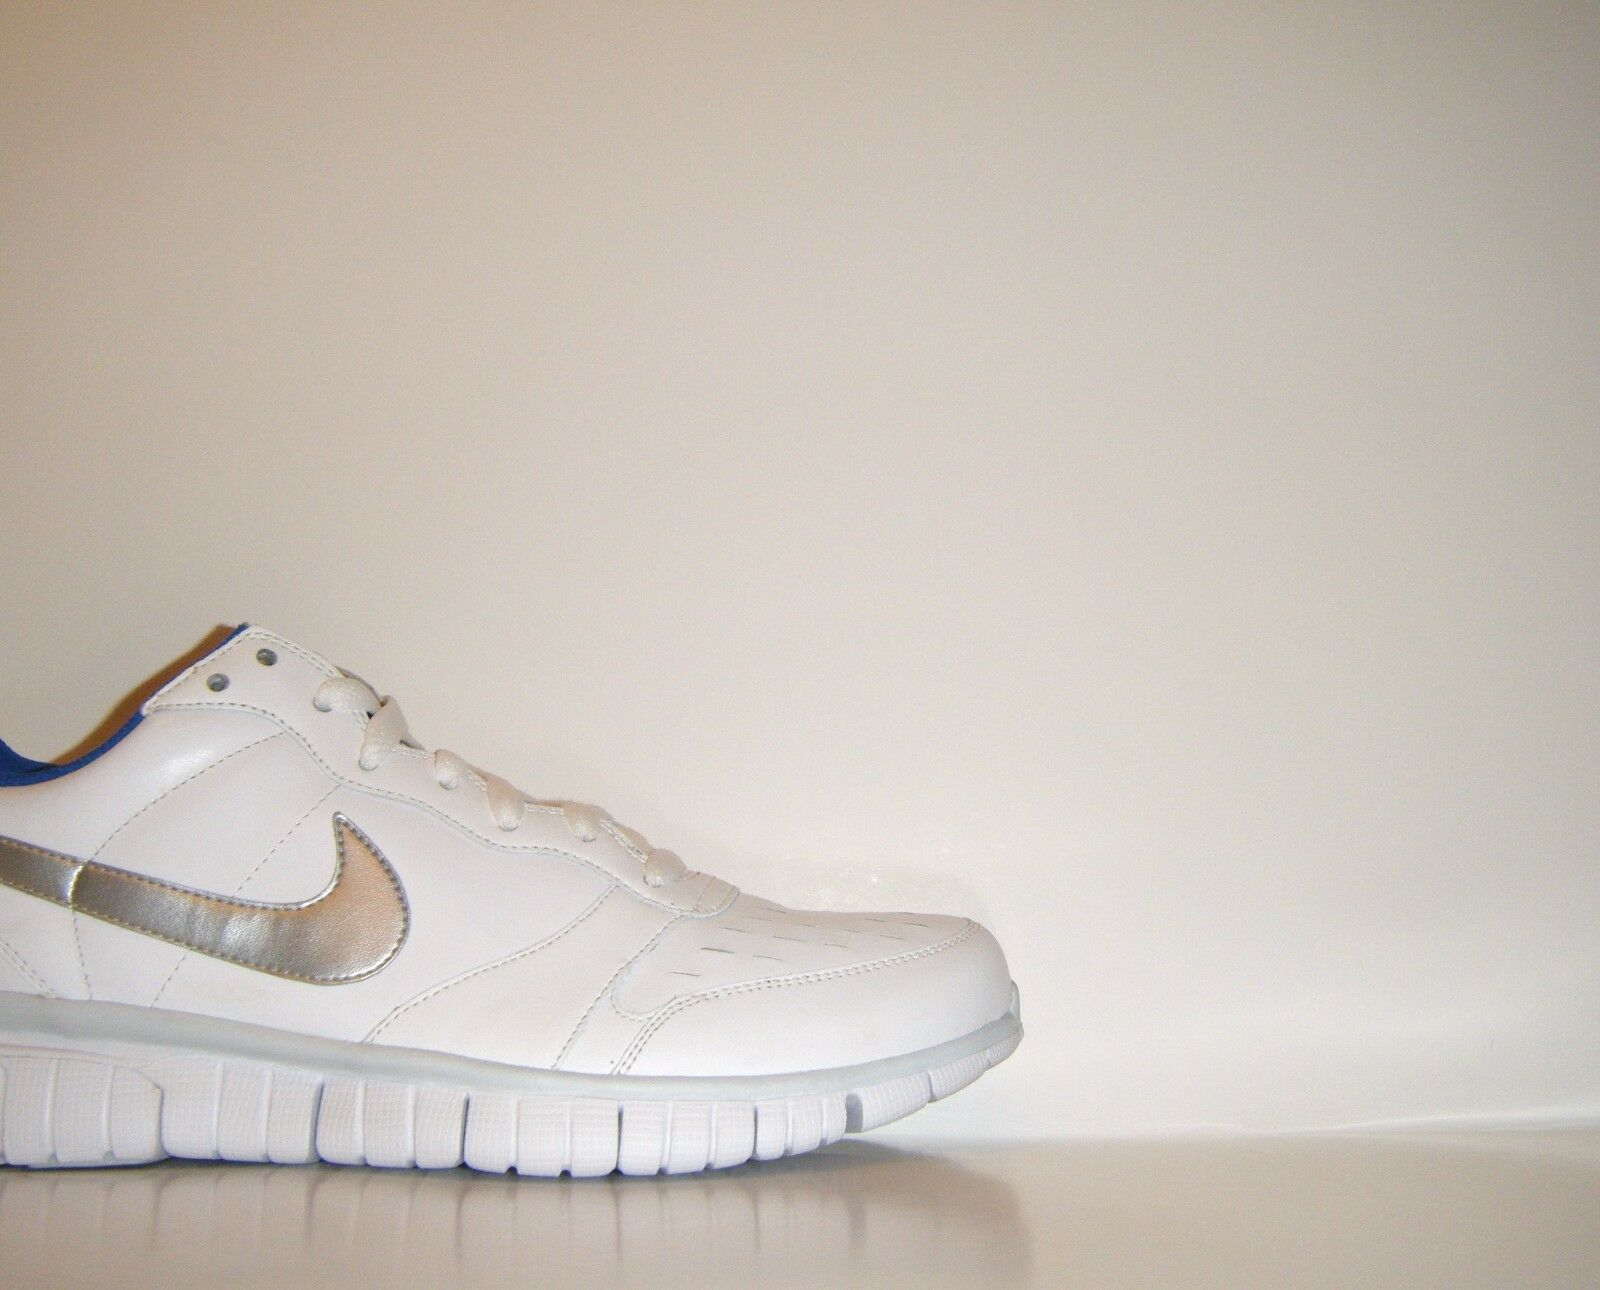 DS 2008 Nike Free Ace NM Unreleased Sample Sz. 9 Promo Tennis Running Trainer